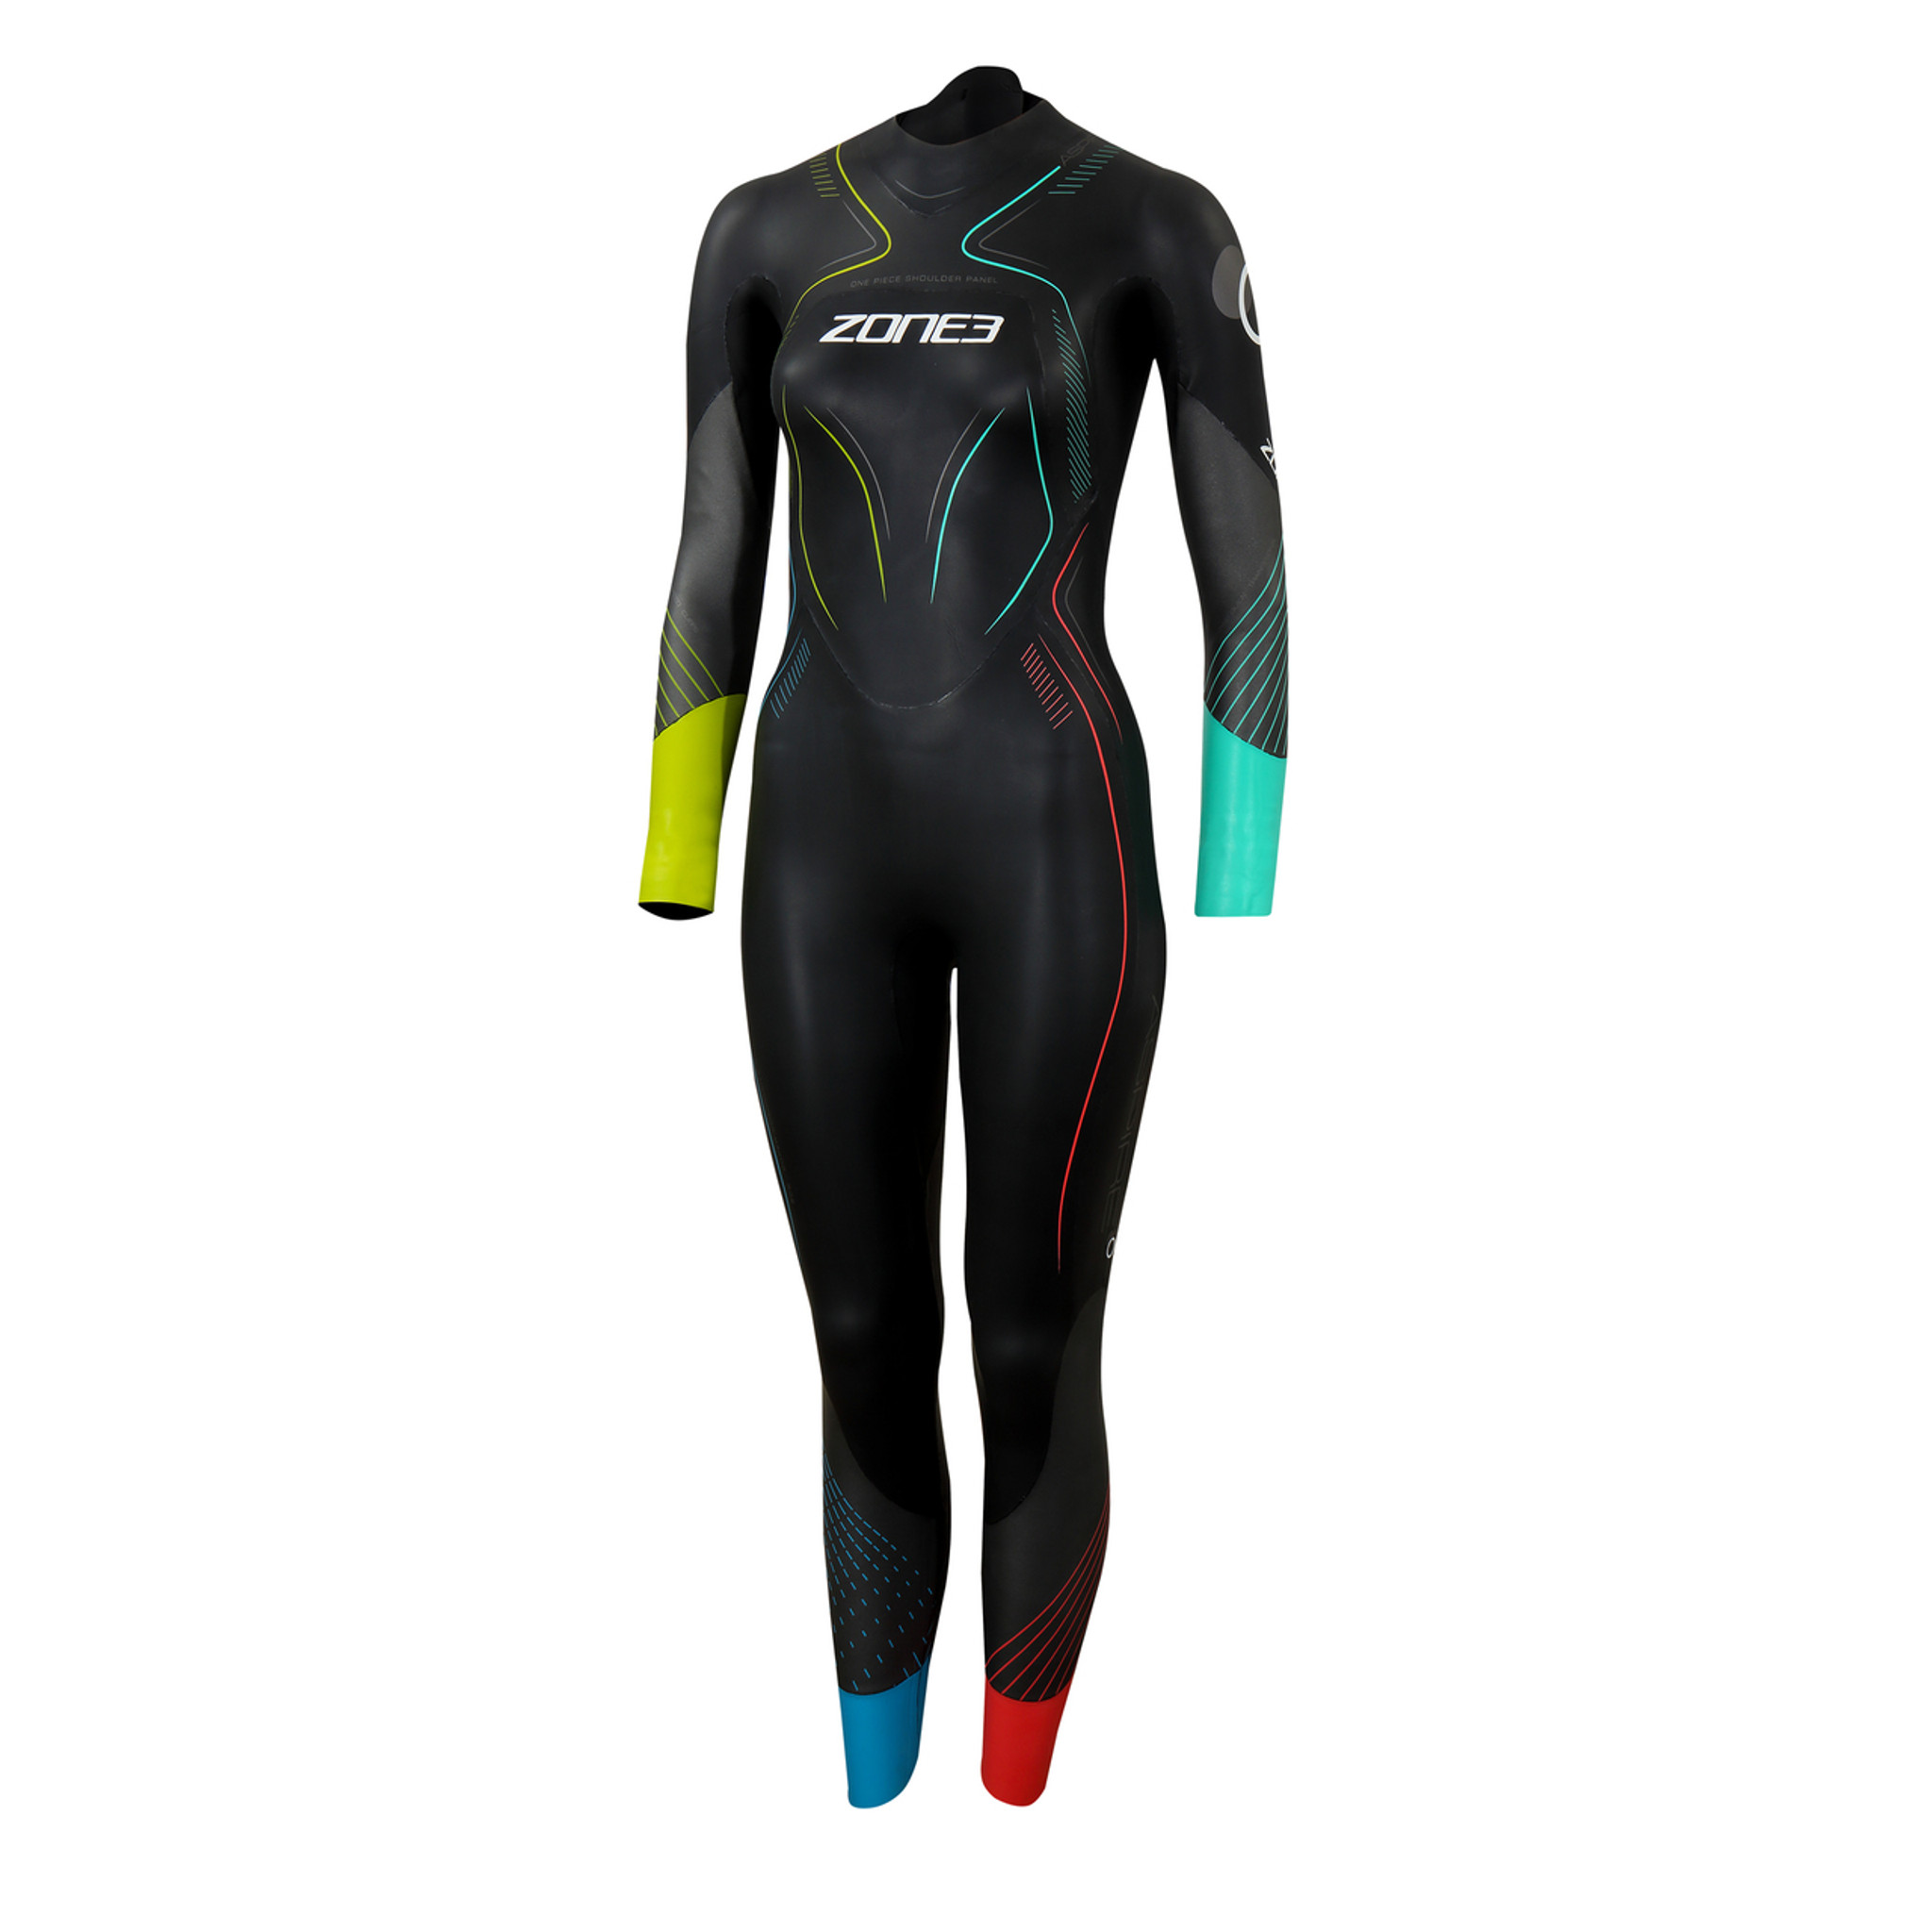 103888ef1a Zone3 - Women s Limited Edition Aspire Wetsuit - 2019